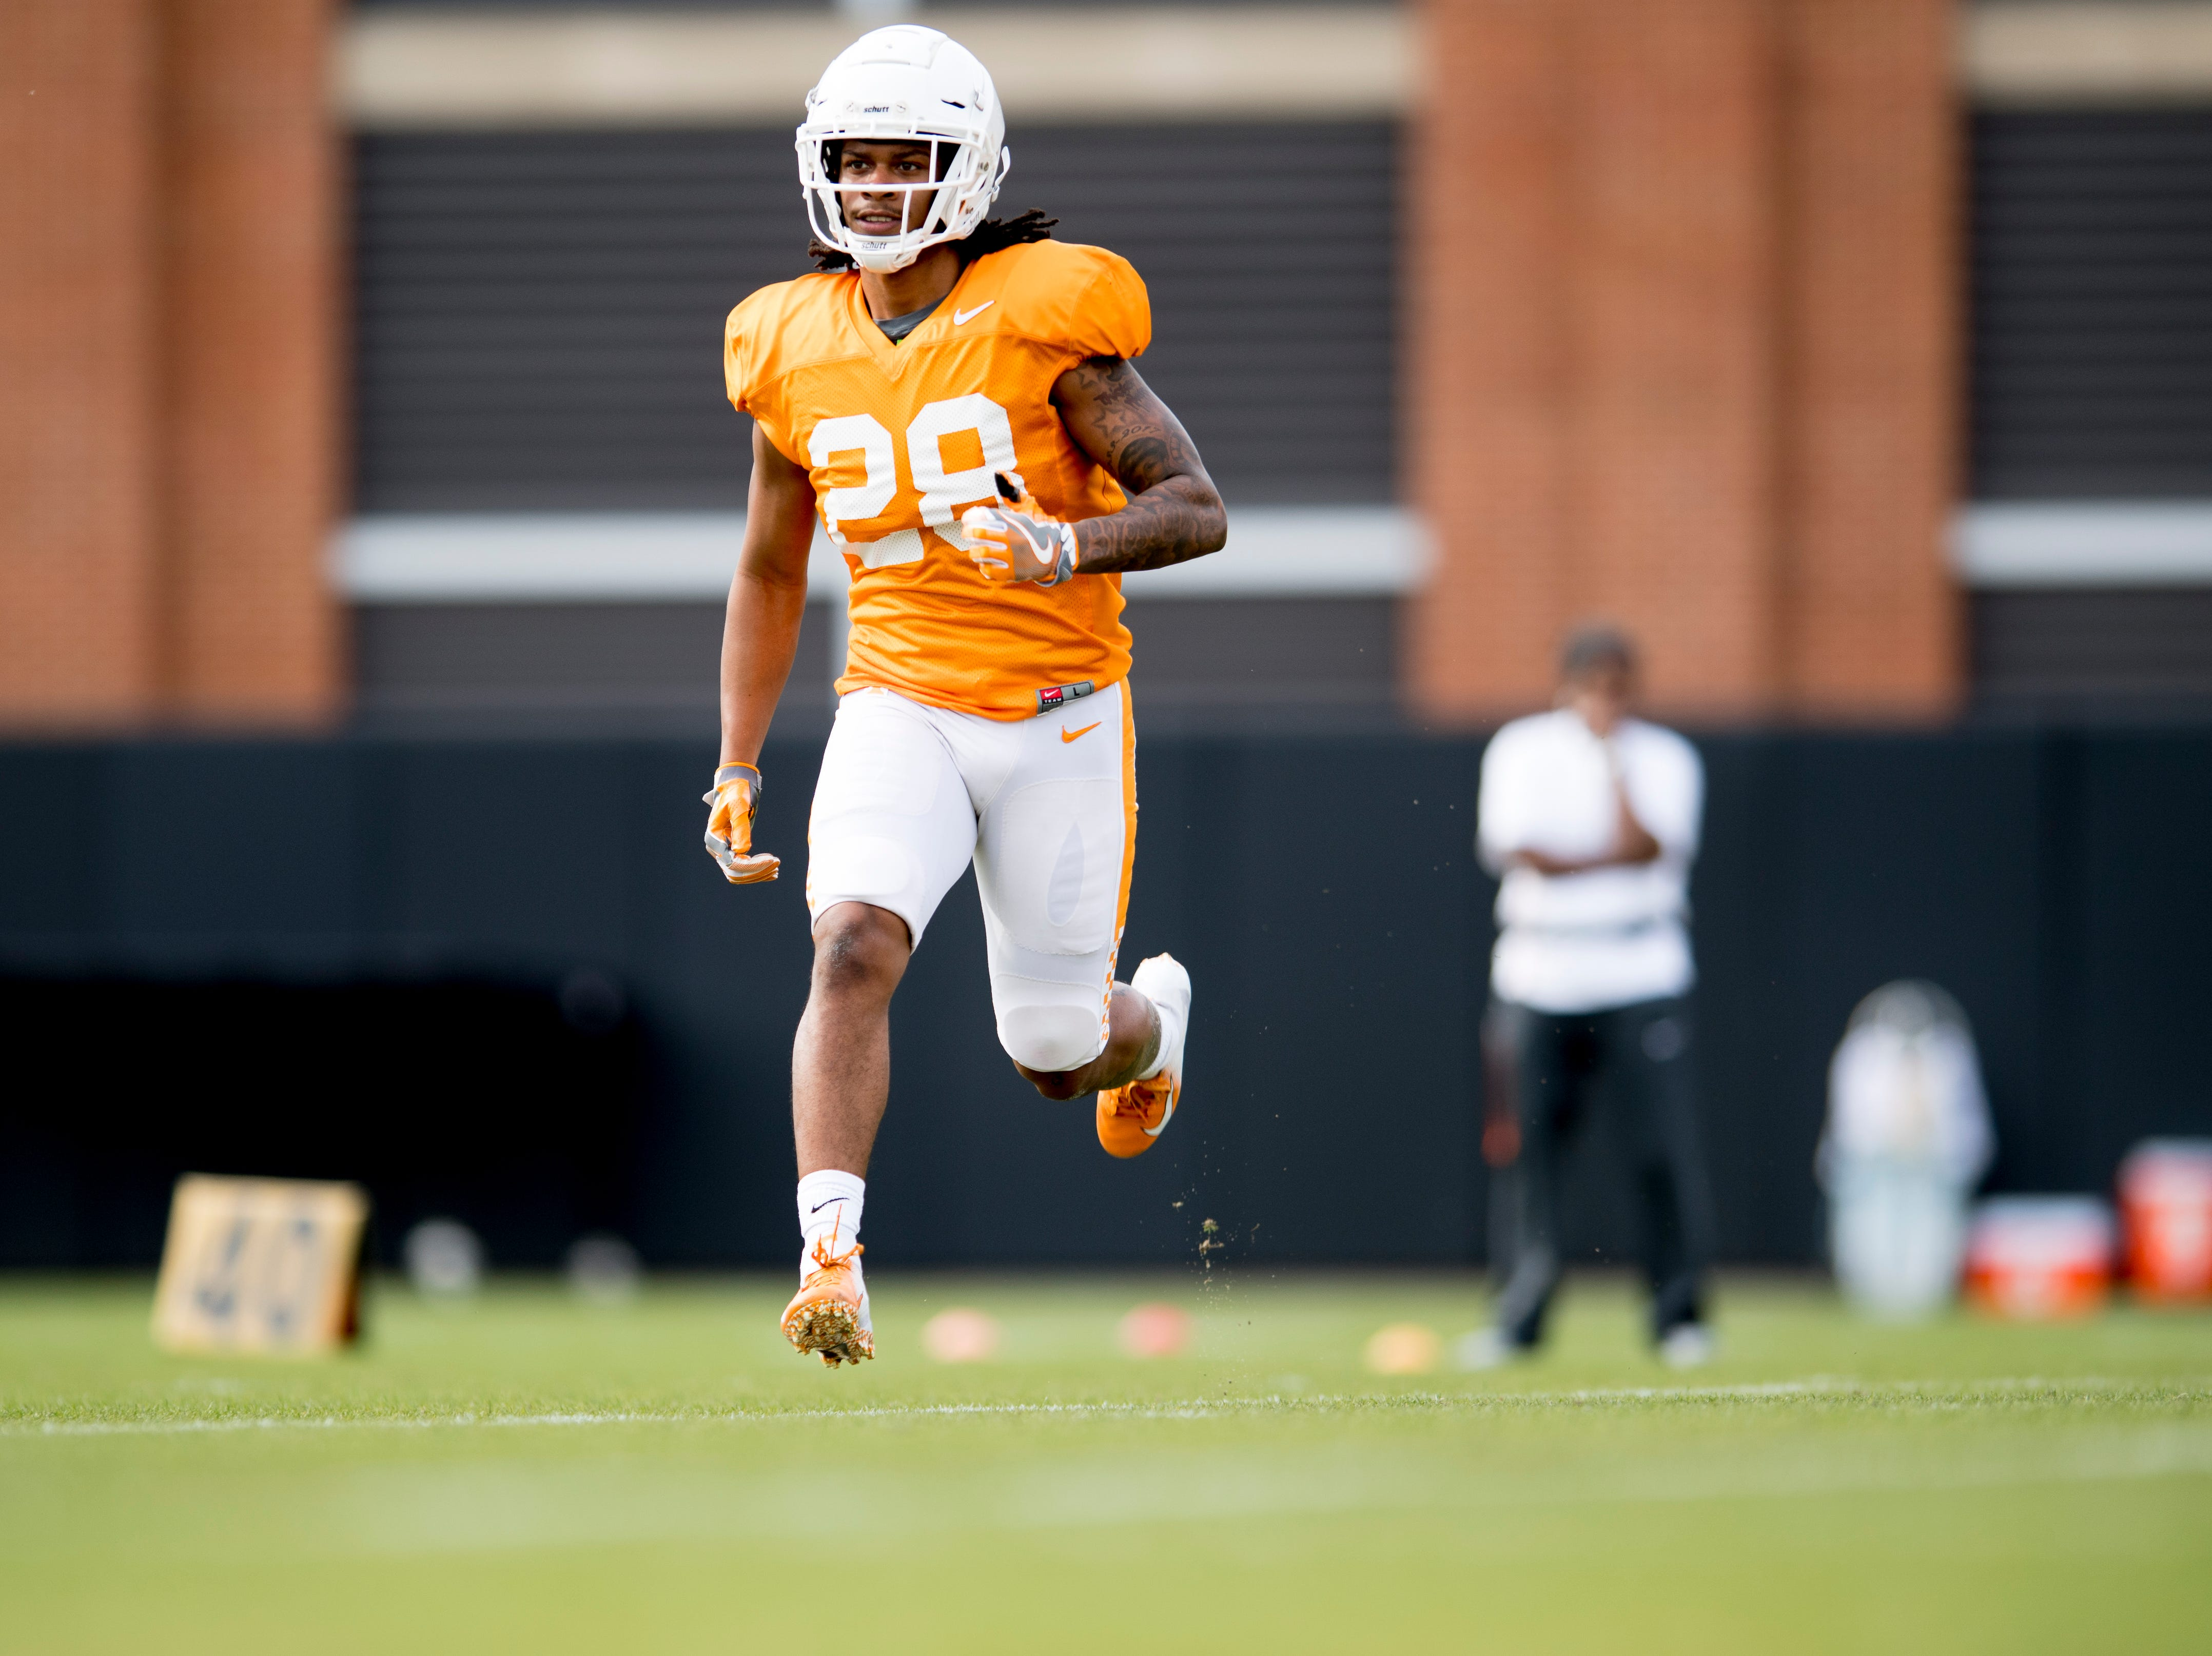 Tennessee defensive back Baylen Buchanan (28) runs down the field during Tennessee spring football practice at  Haslam Field in Knoxville, Tennessee on Wednesday, March 13, 2019.